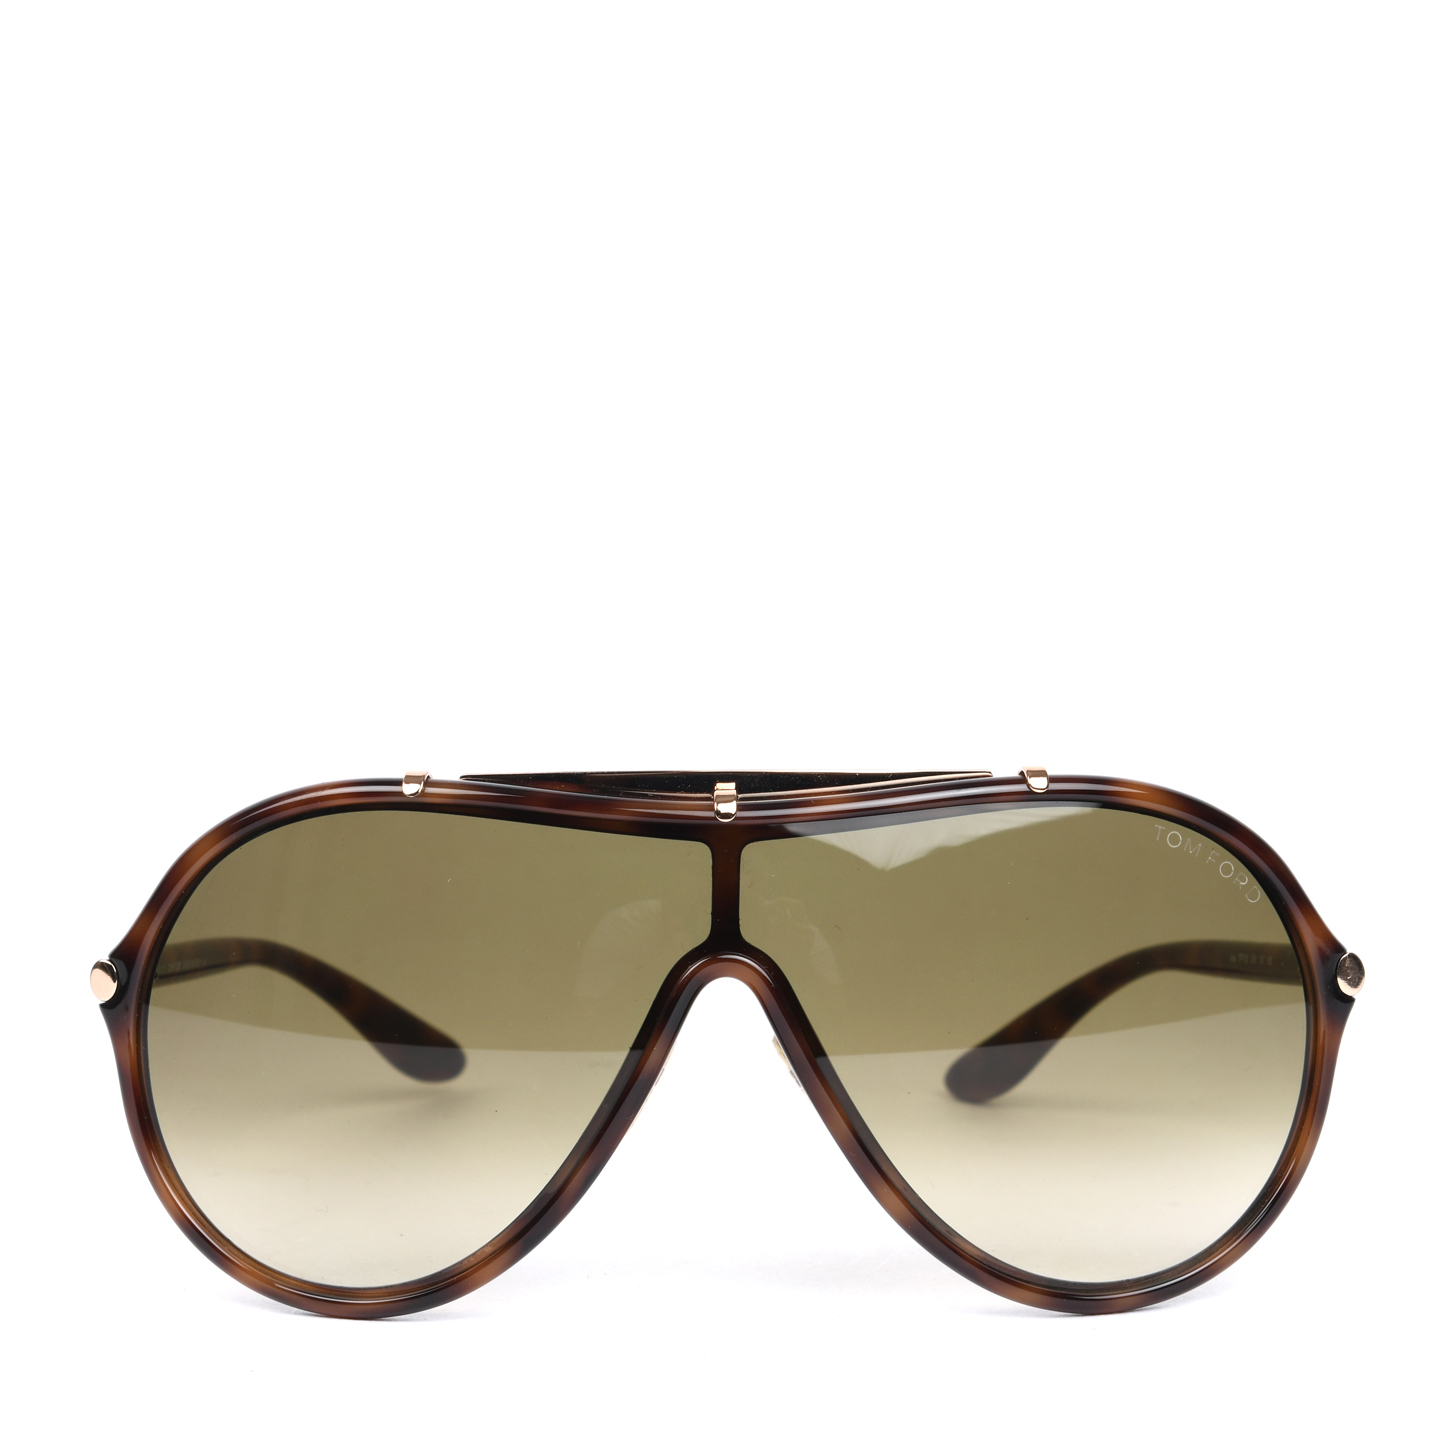 Tom Ford Havana Ace Shield Sunglasses - TF 152 (01)